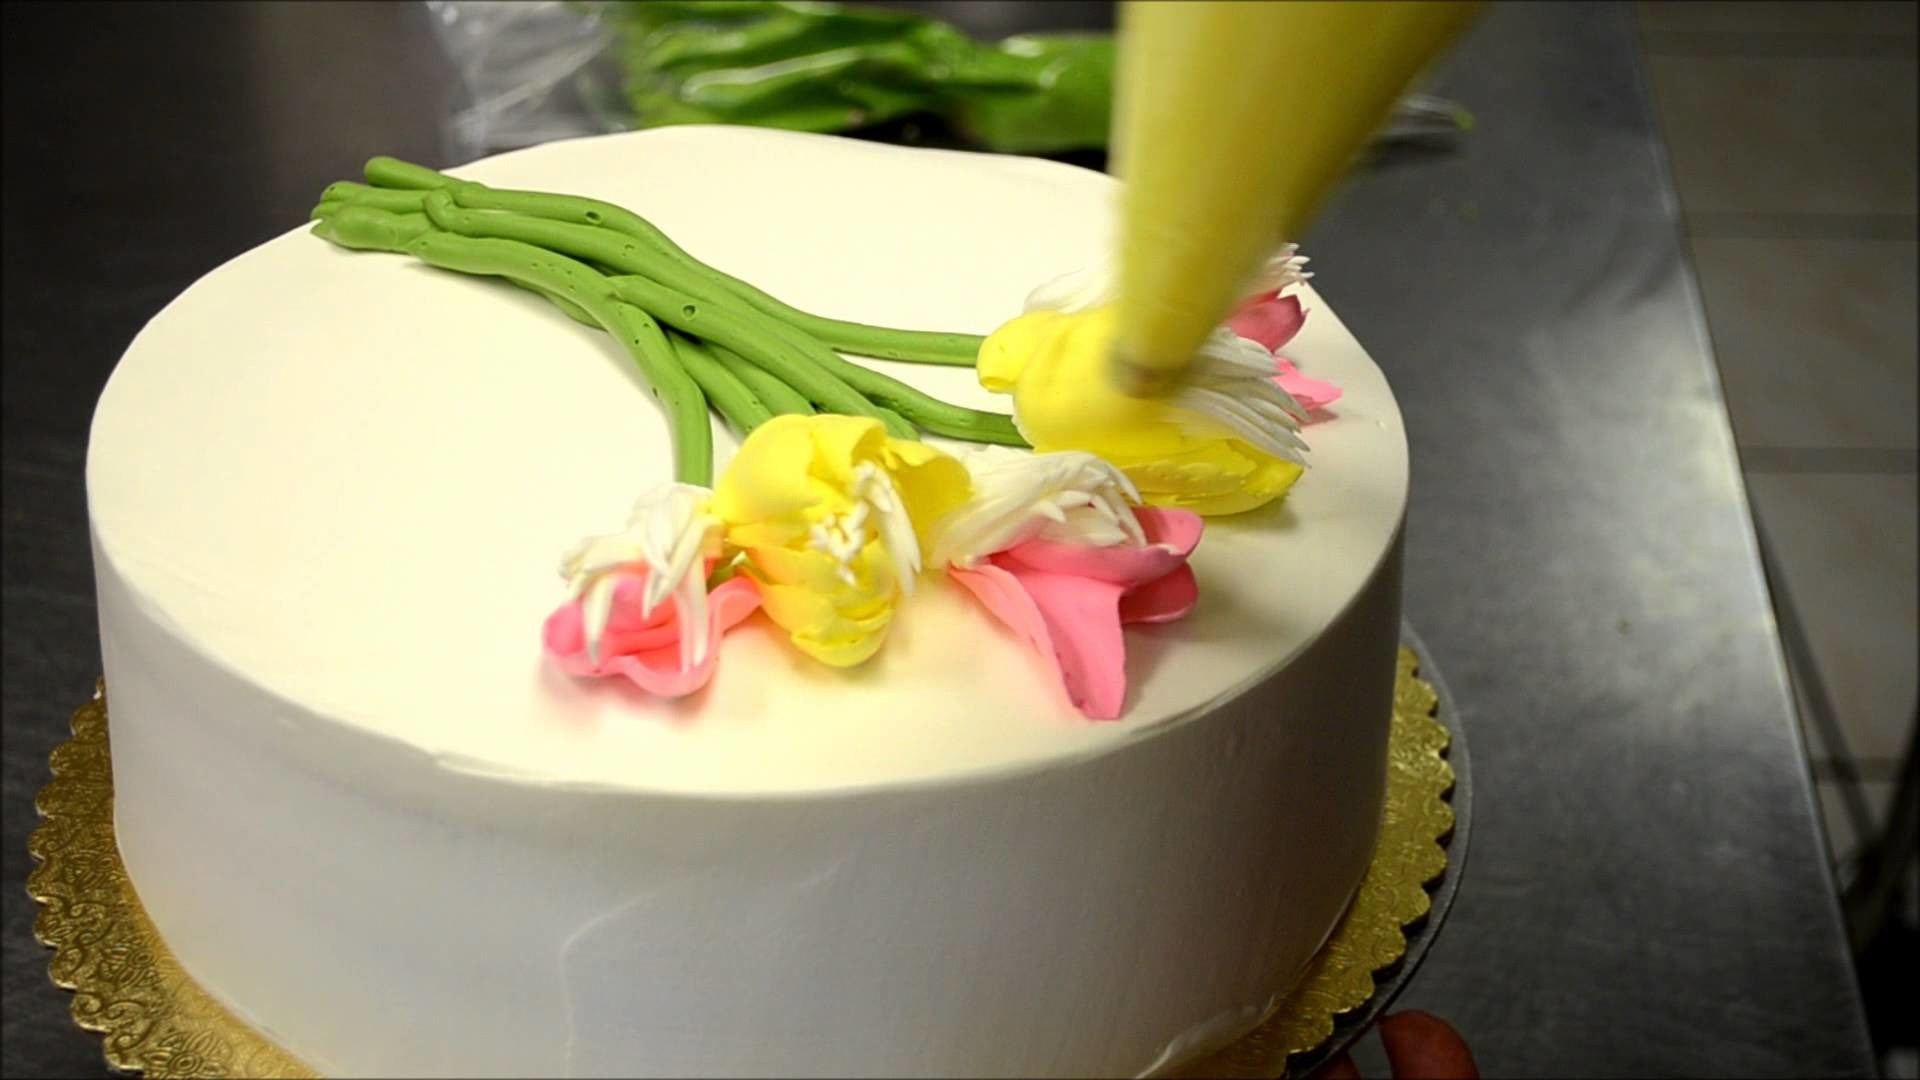 How to decorate a cake with tulips